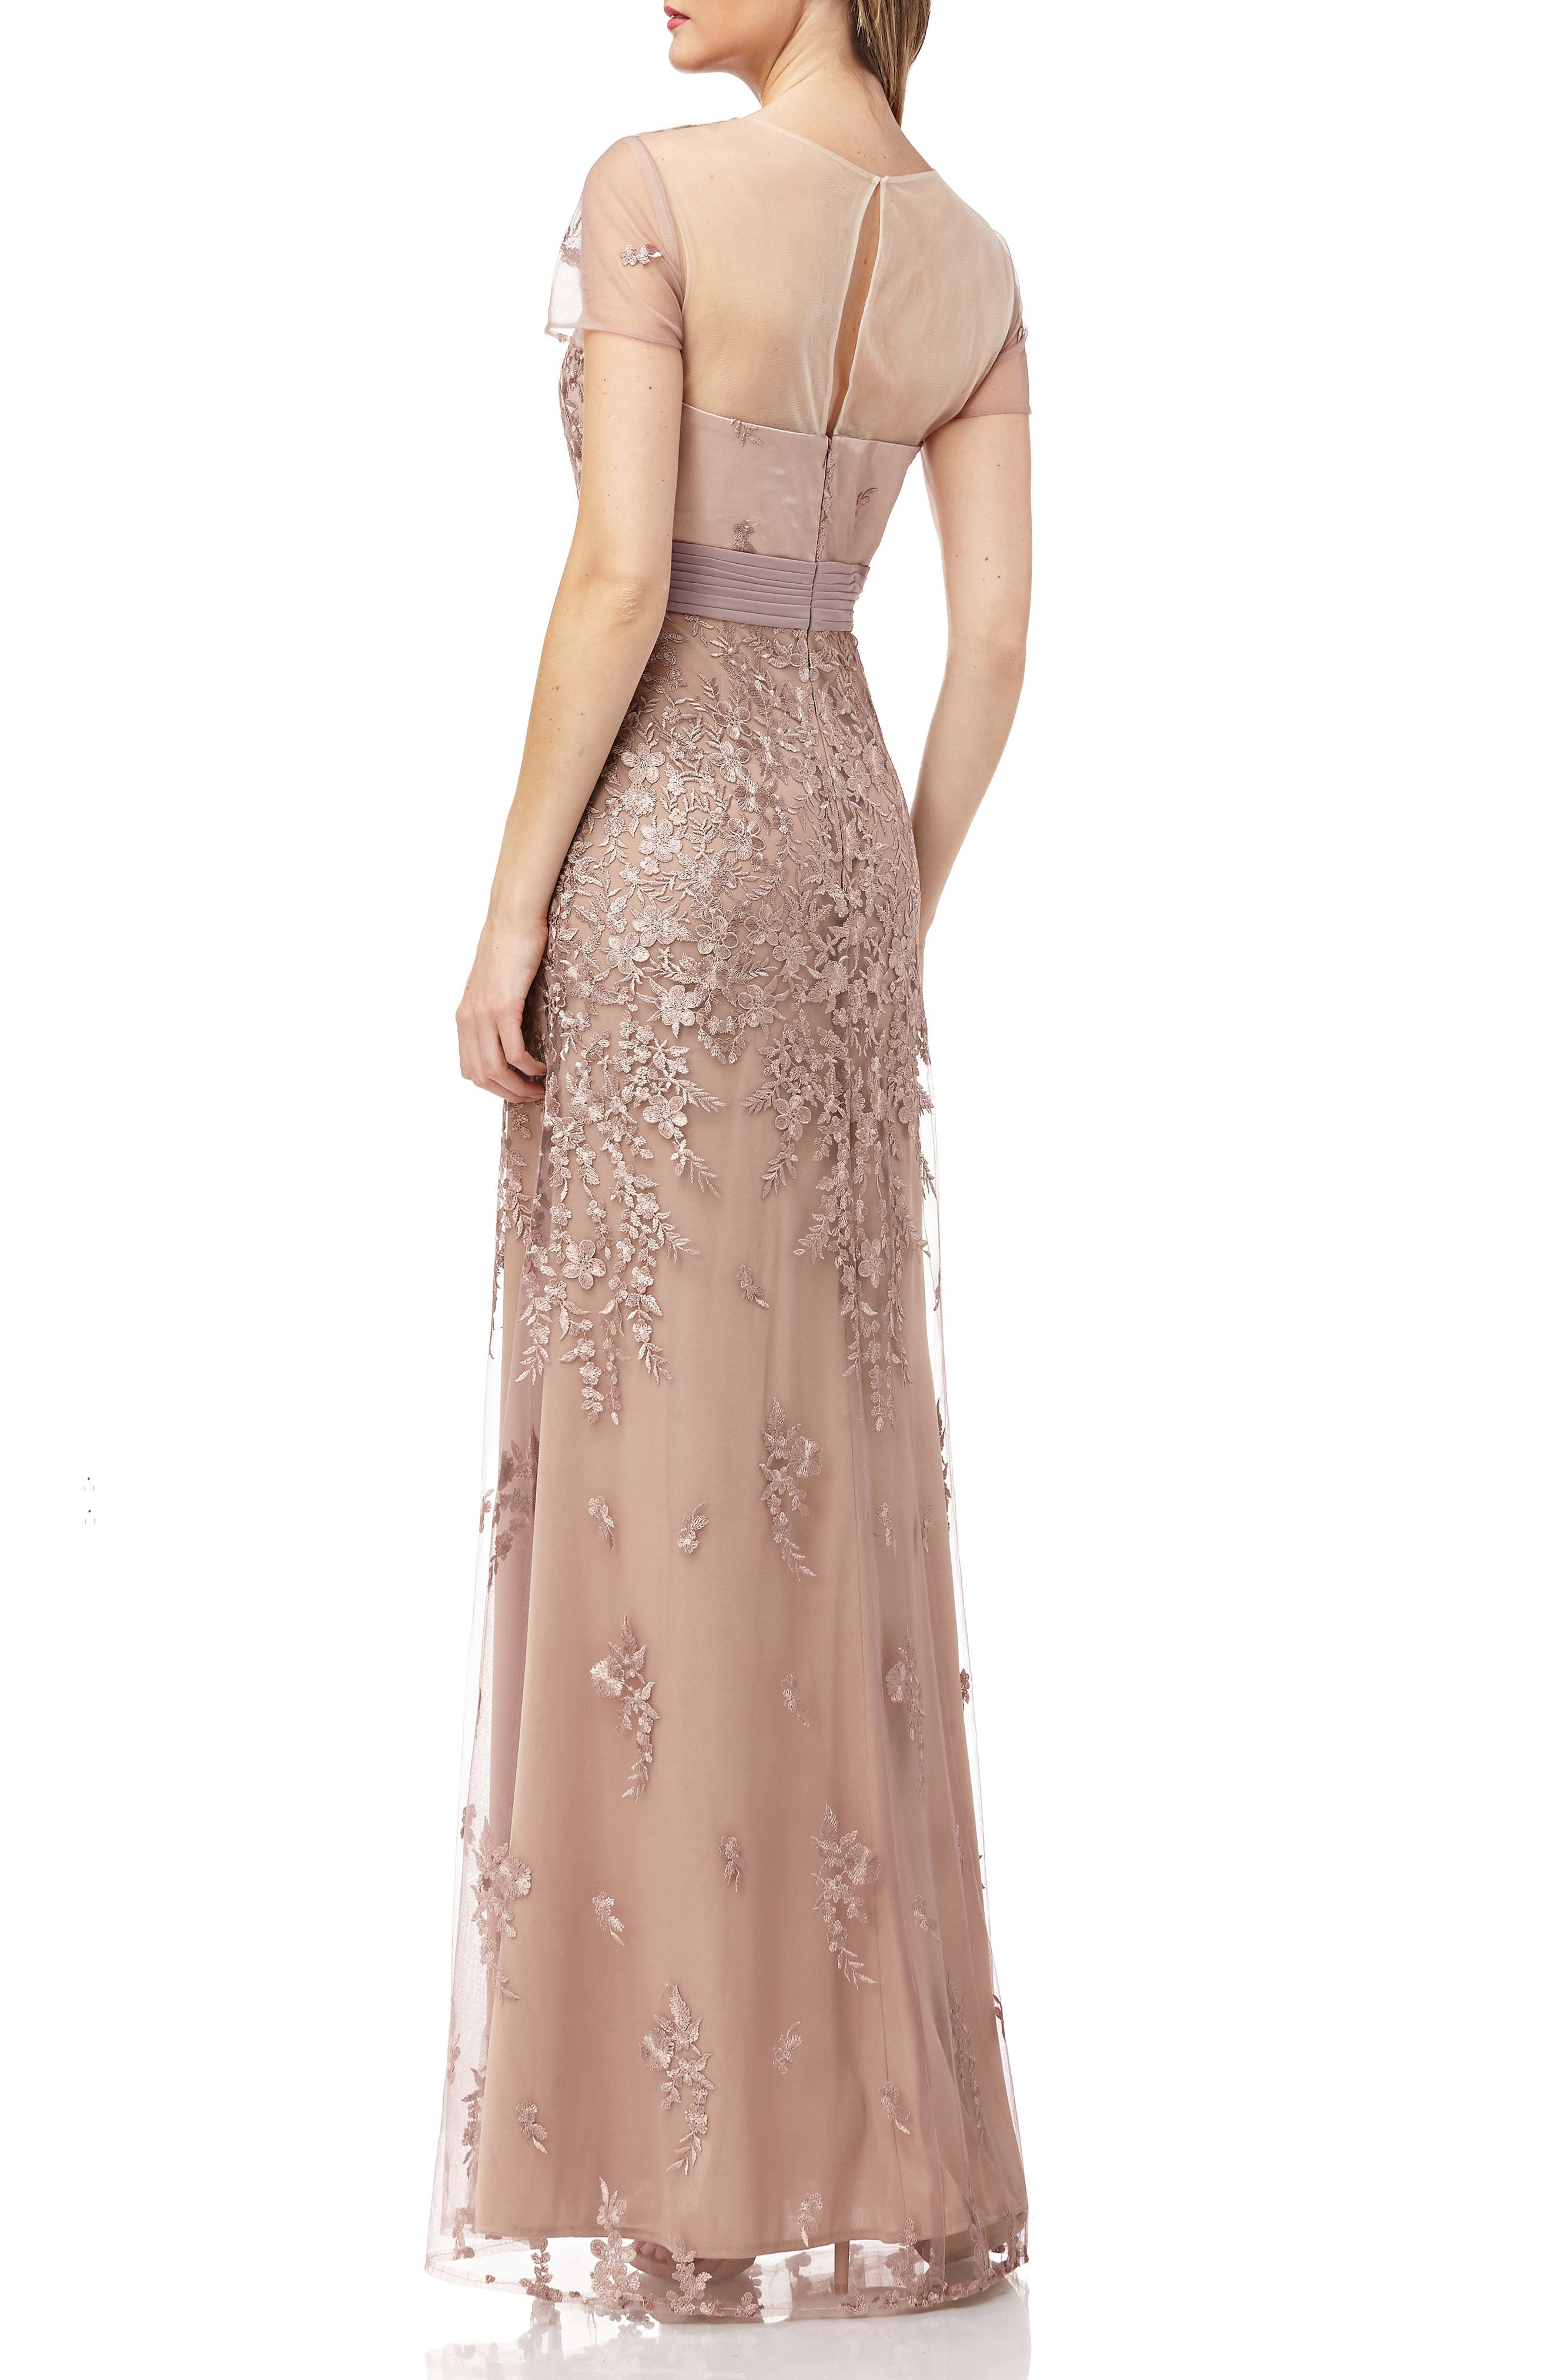 JS COLLECTIONS, Floral Embroidered Evening Dress, Alternate thumbnail 2, color, MAPLE SUGAR